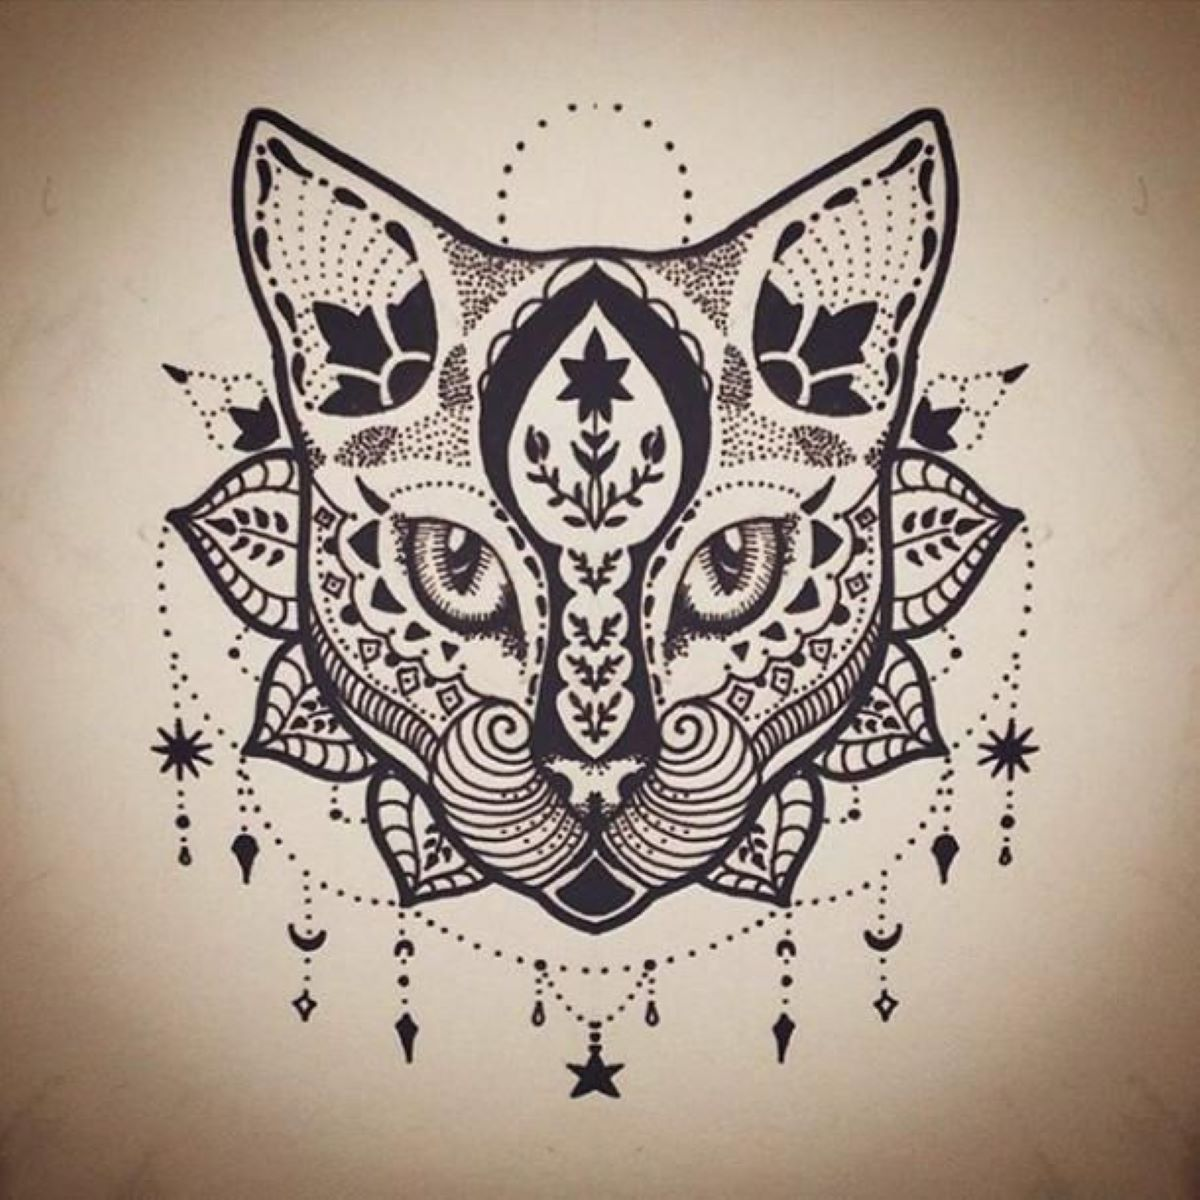 tattoo-gatto-mandala